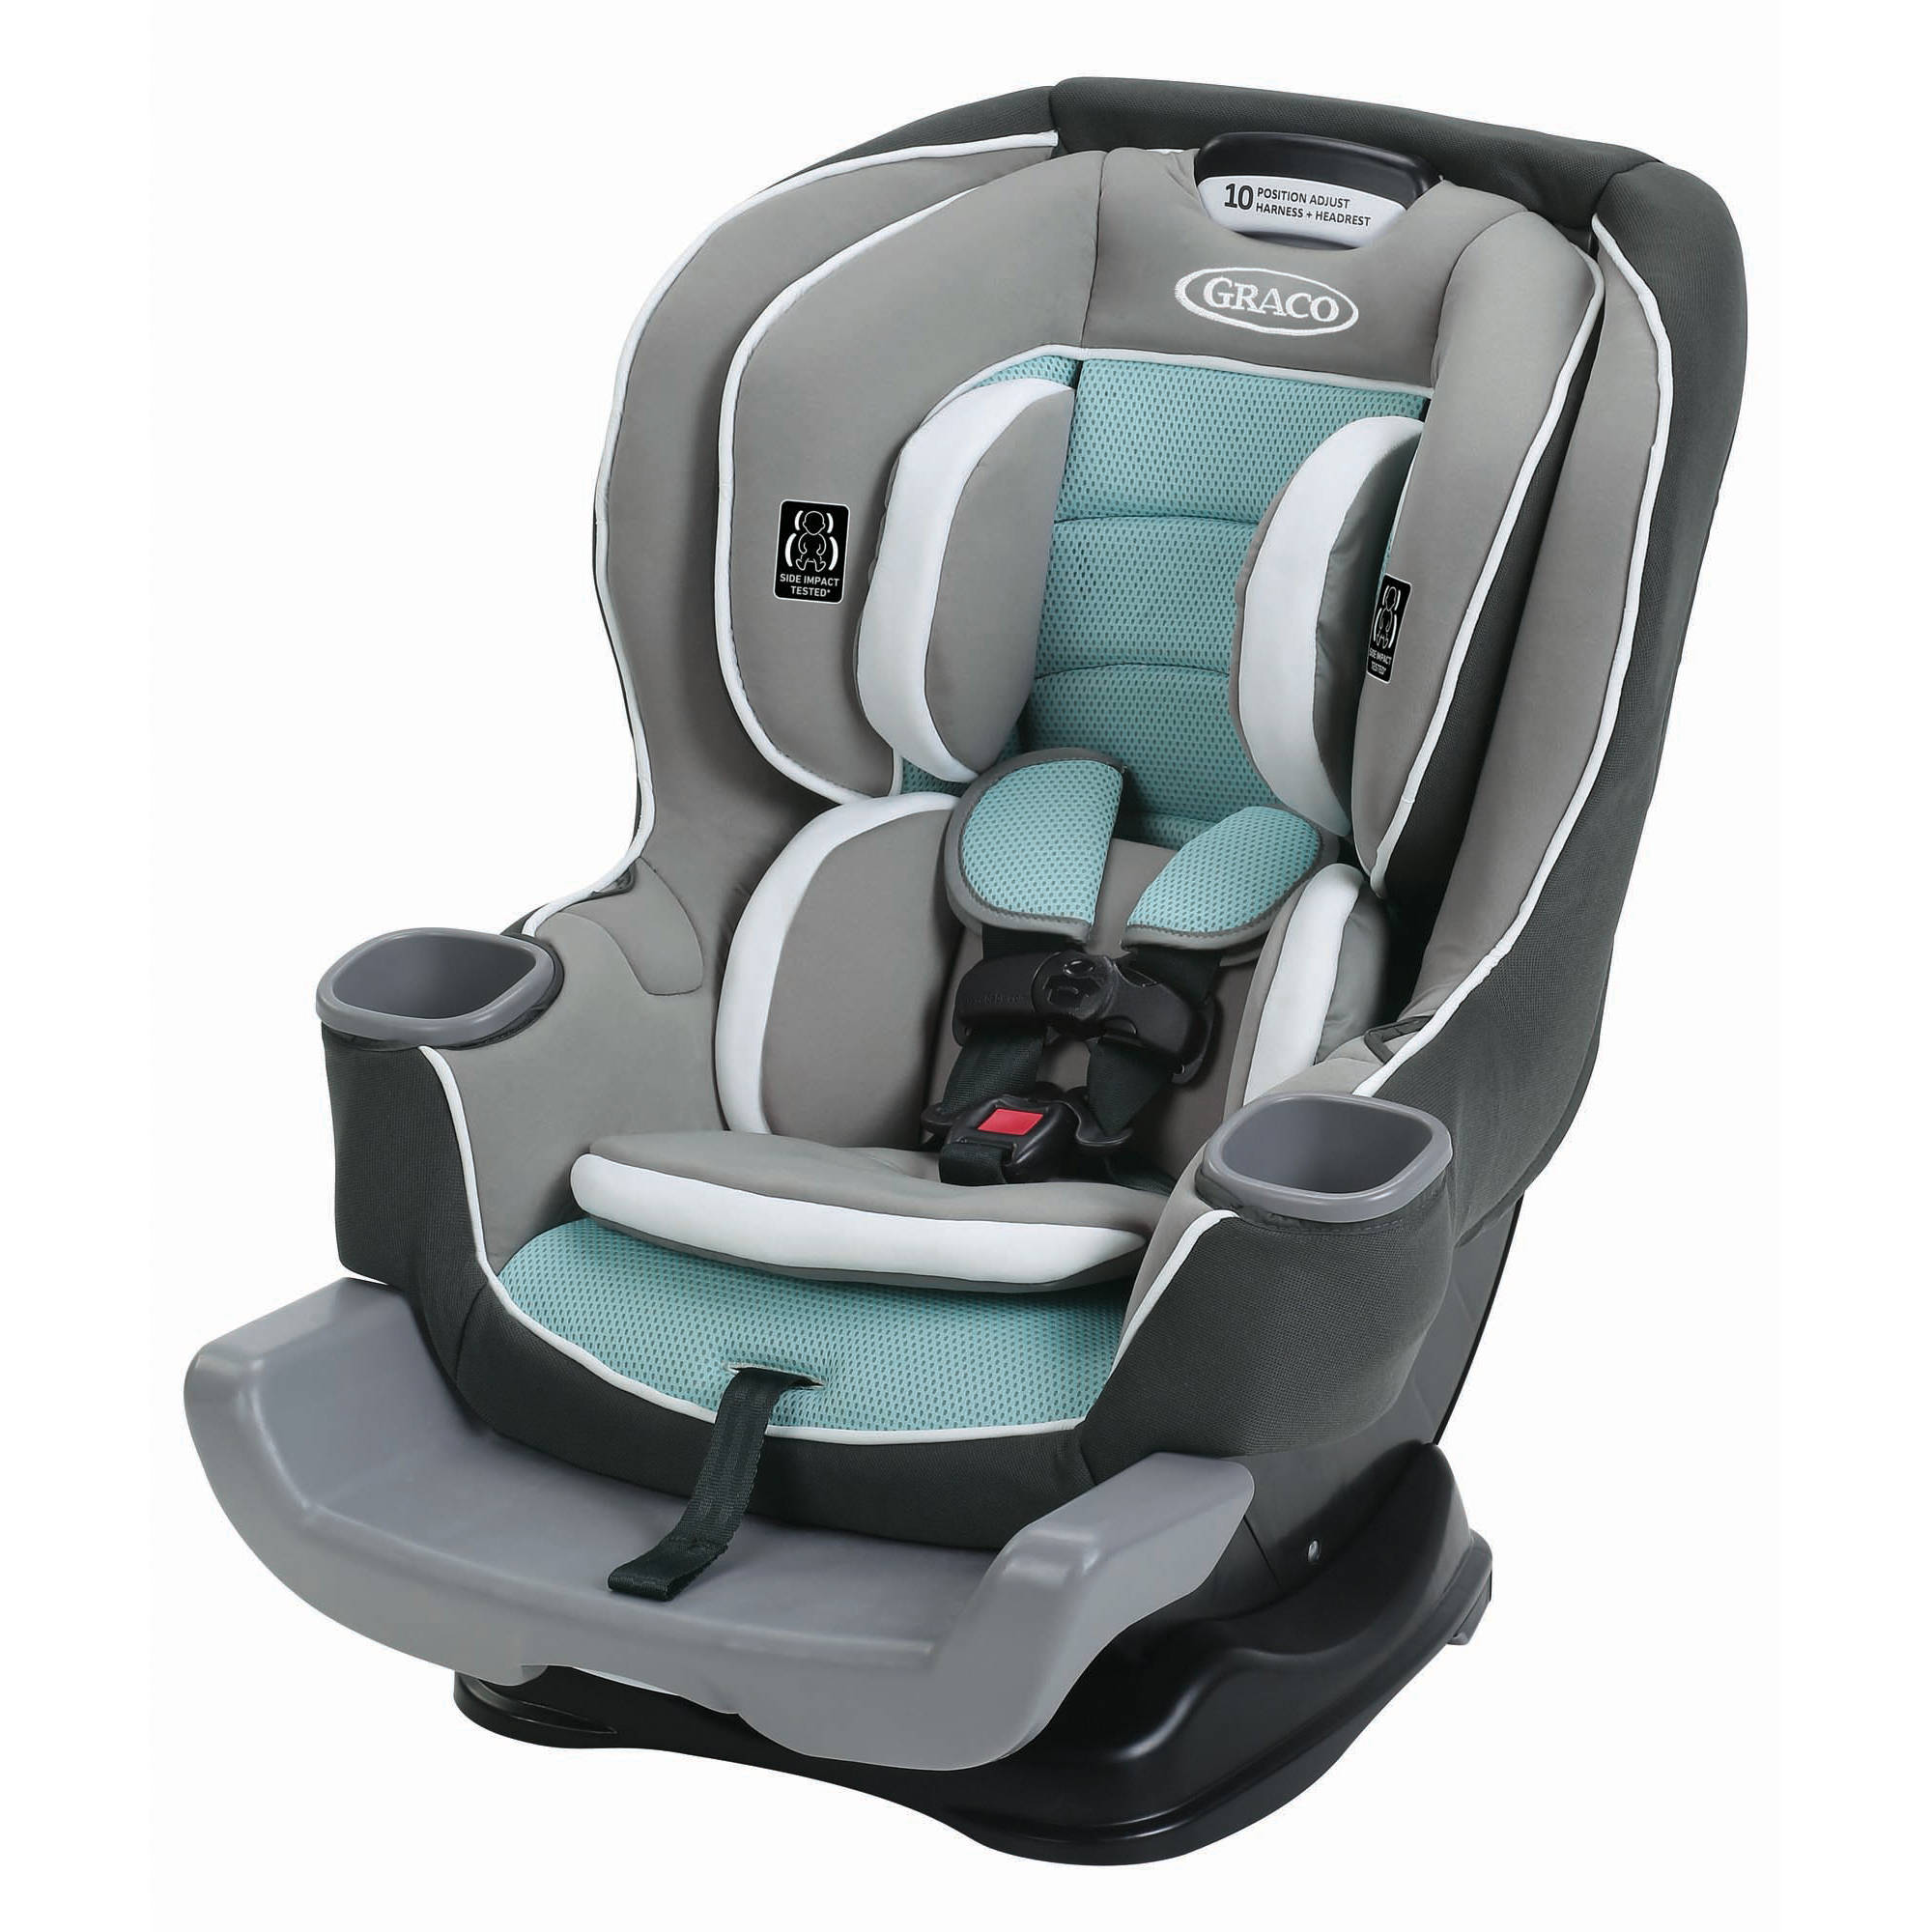 graco extend2fit convertible car seat choose your pattern ebay. Black Bedroom Furniture Sets. Home Design Ideas